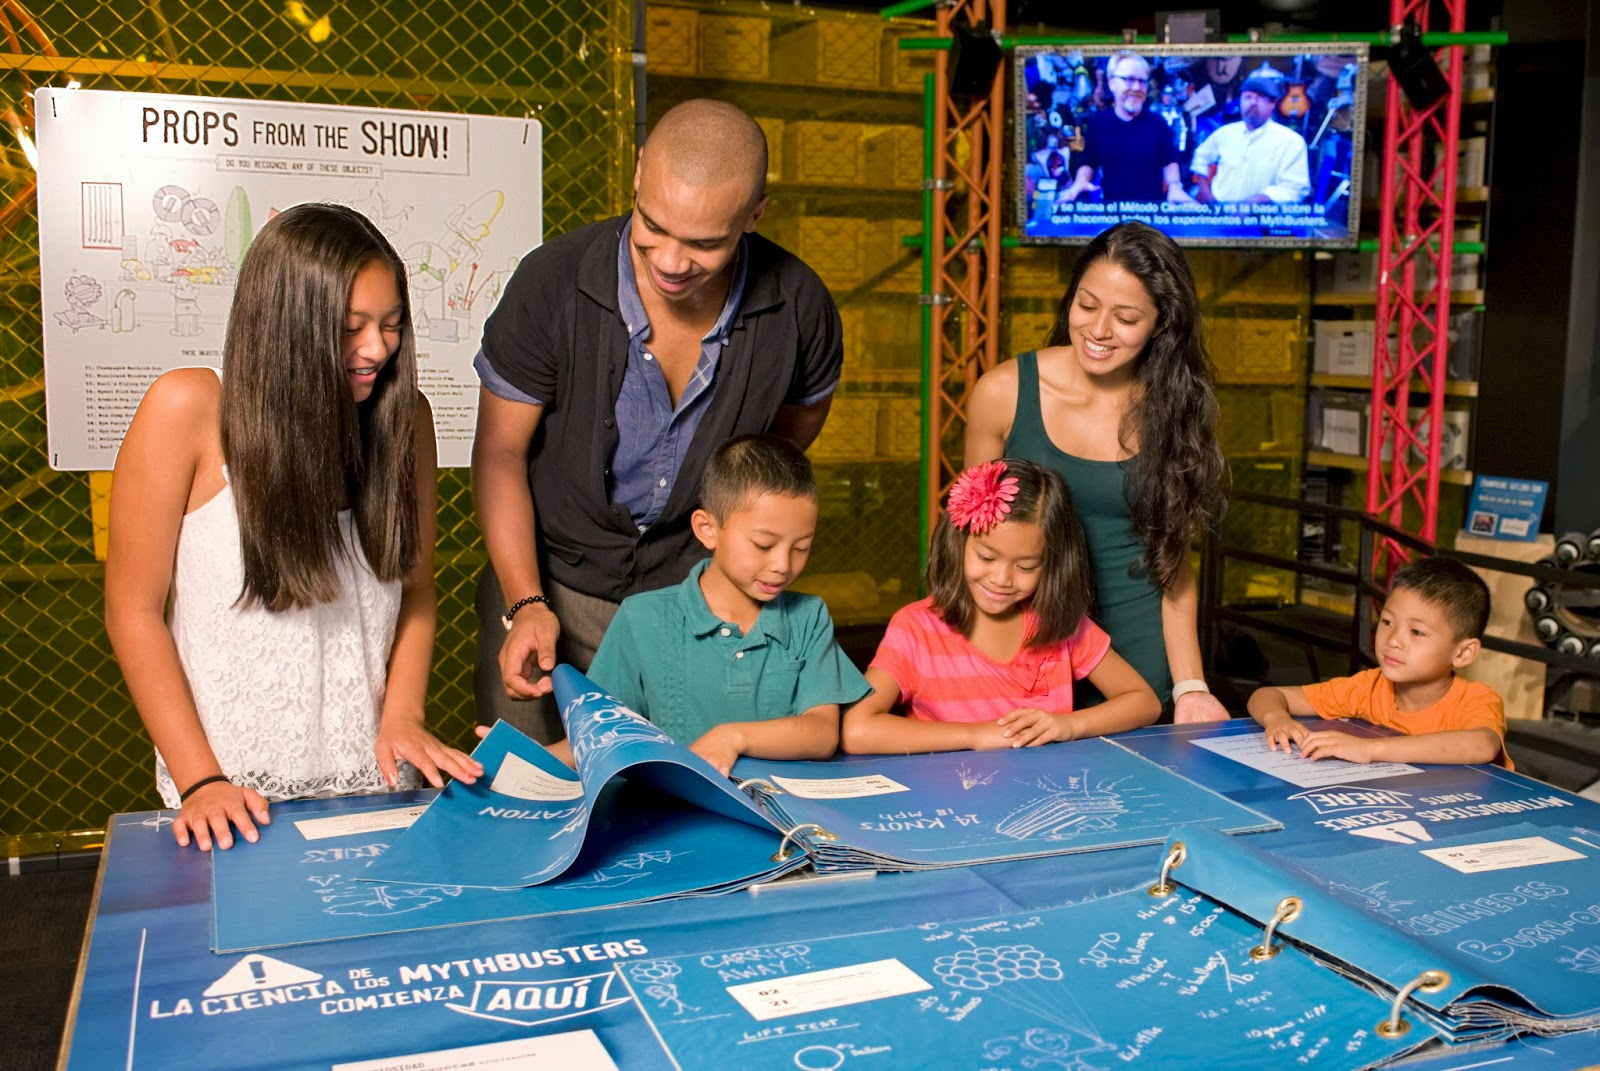 Macaroni kid visits the new exhibit mythbusters macaroni kid mythbusters iconic set this room acts as an introduction to mythbusting and is filled with gadgets props video and of course blueprints used by malvernweather Images